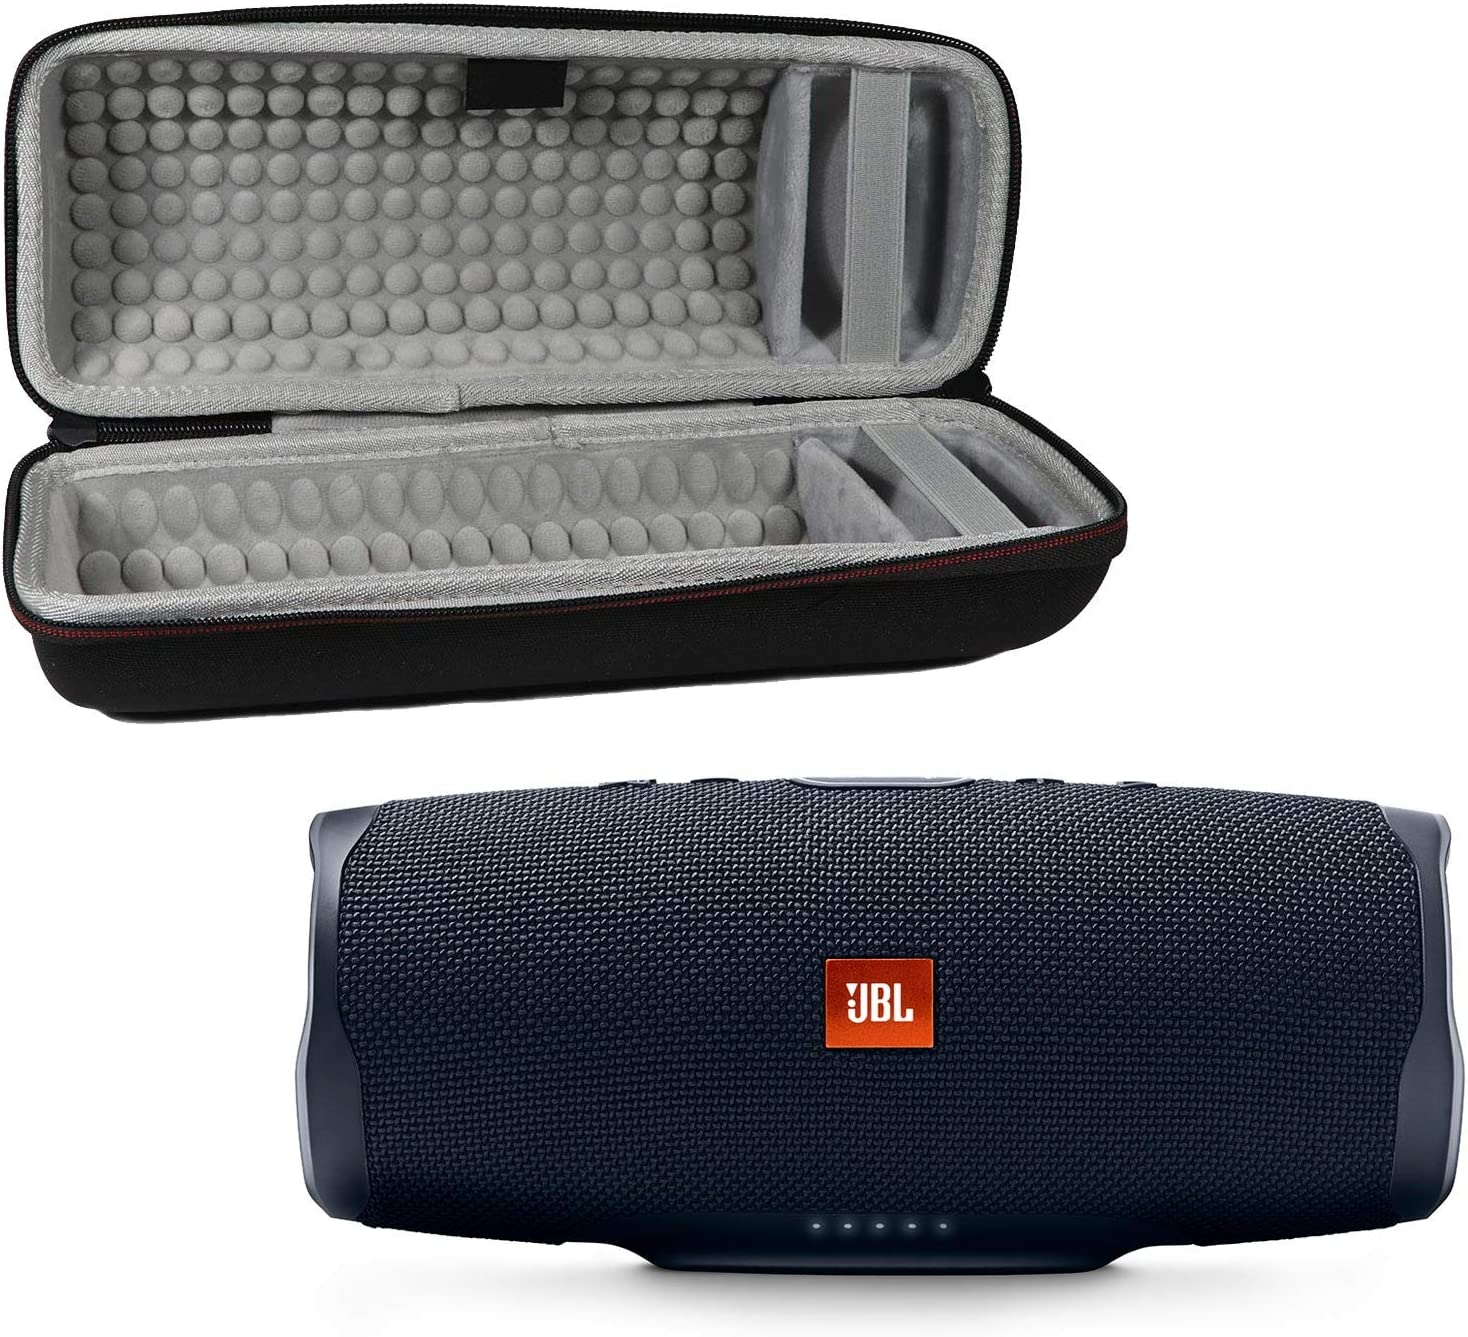 JBL Charge 4 Waterproof Wireless Bluetooth Speaker Bundle with Portable Hard Case - Black